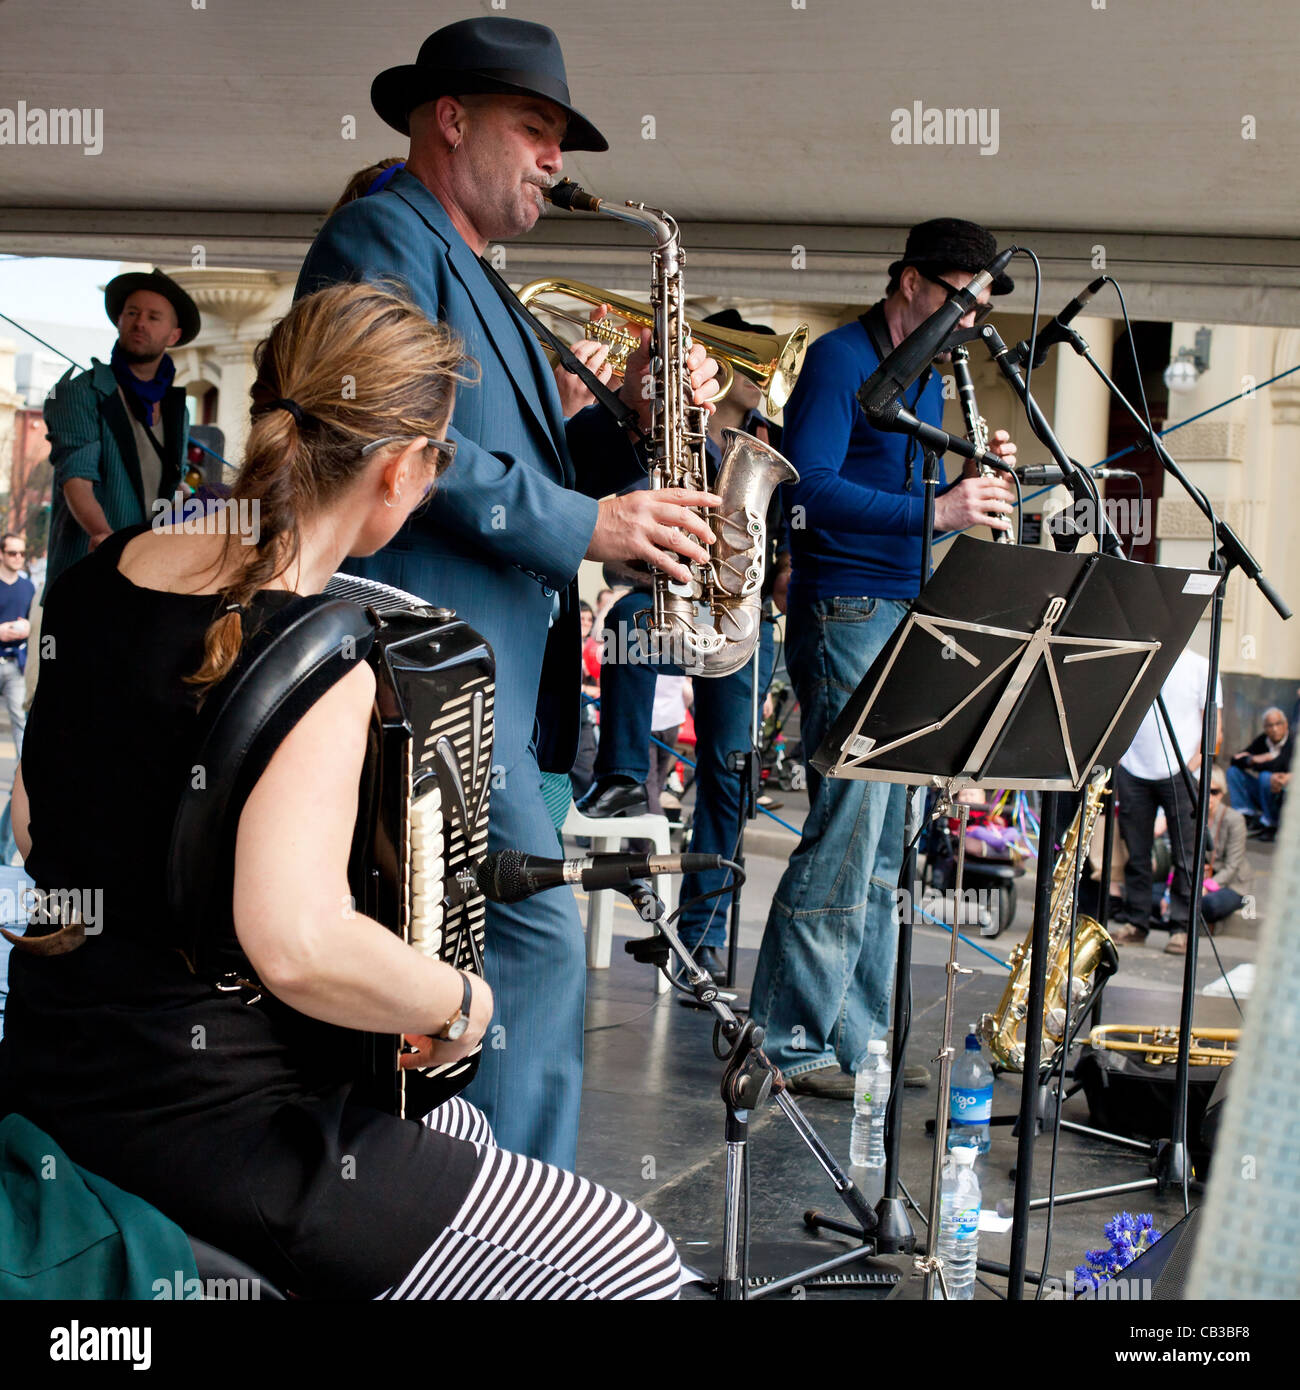 High Noon community festival is a Northcote local music fest in Melbourne, Australia band playing on stage Stock Photo